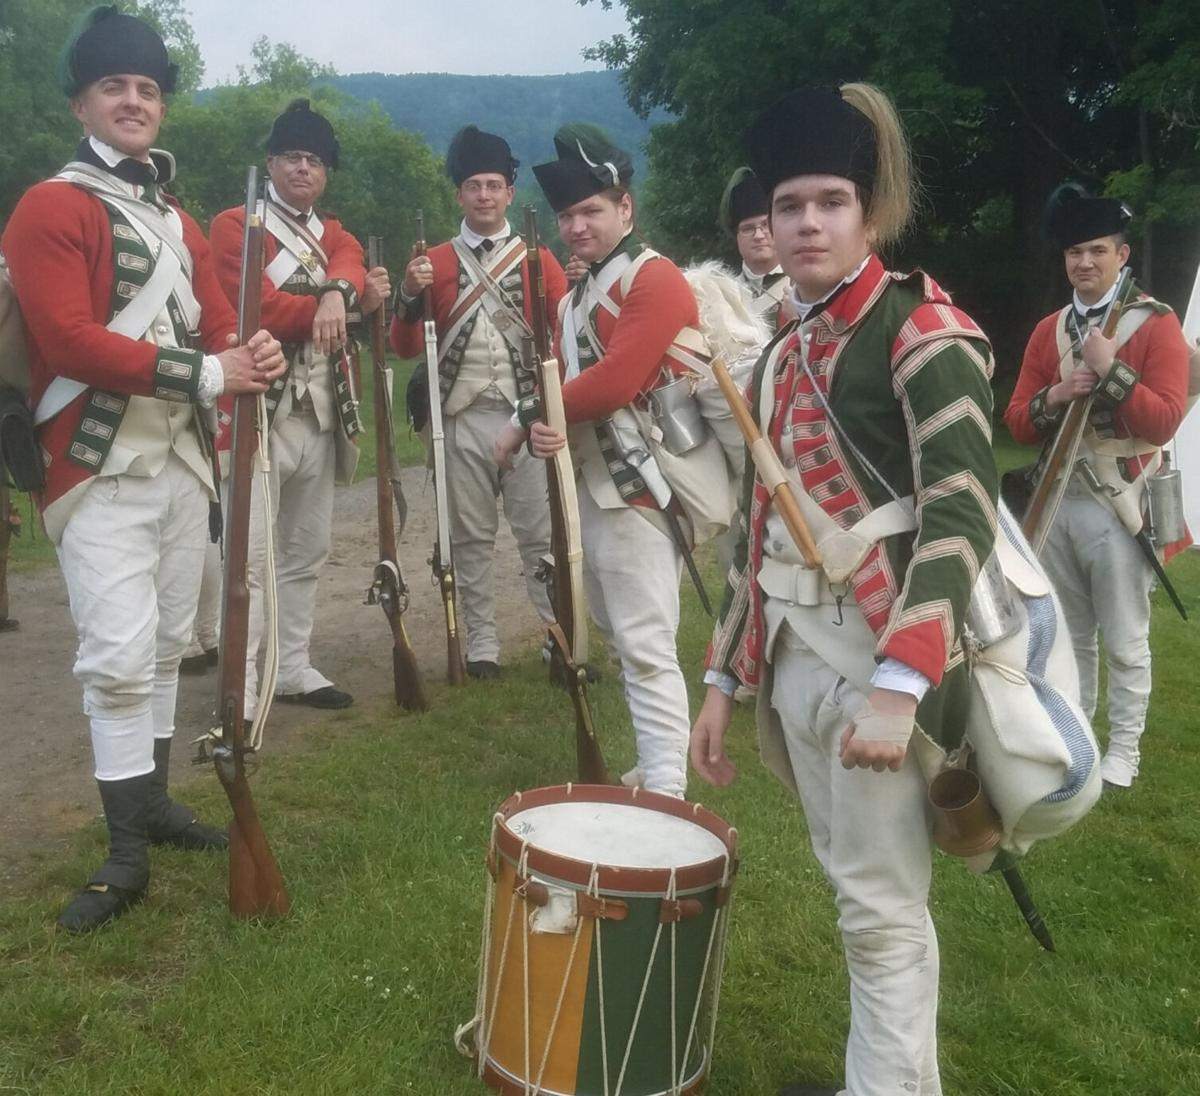 Revolutionary War living history weekend at Fort Ontario, Aug. 14-15